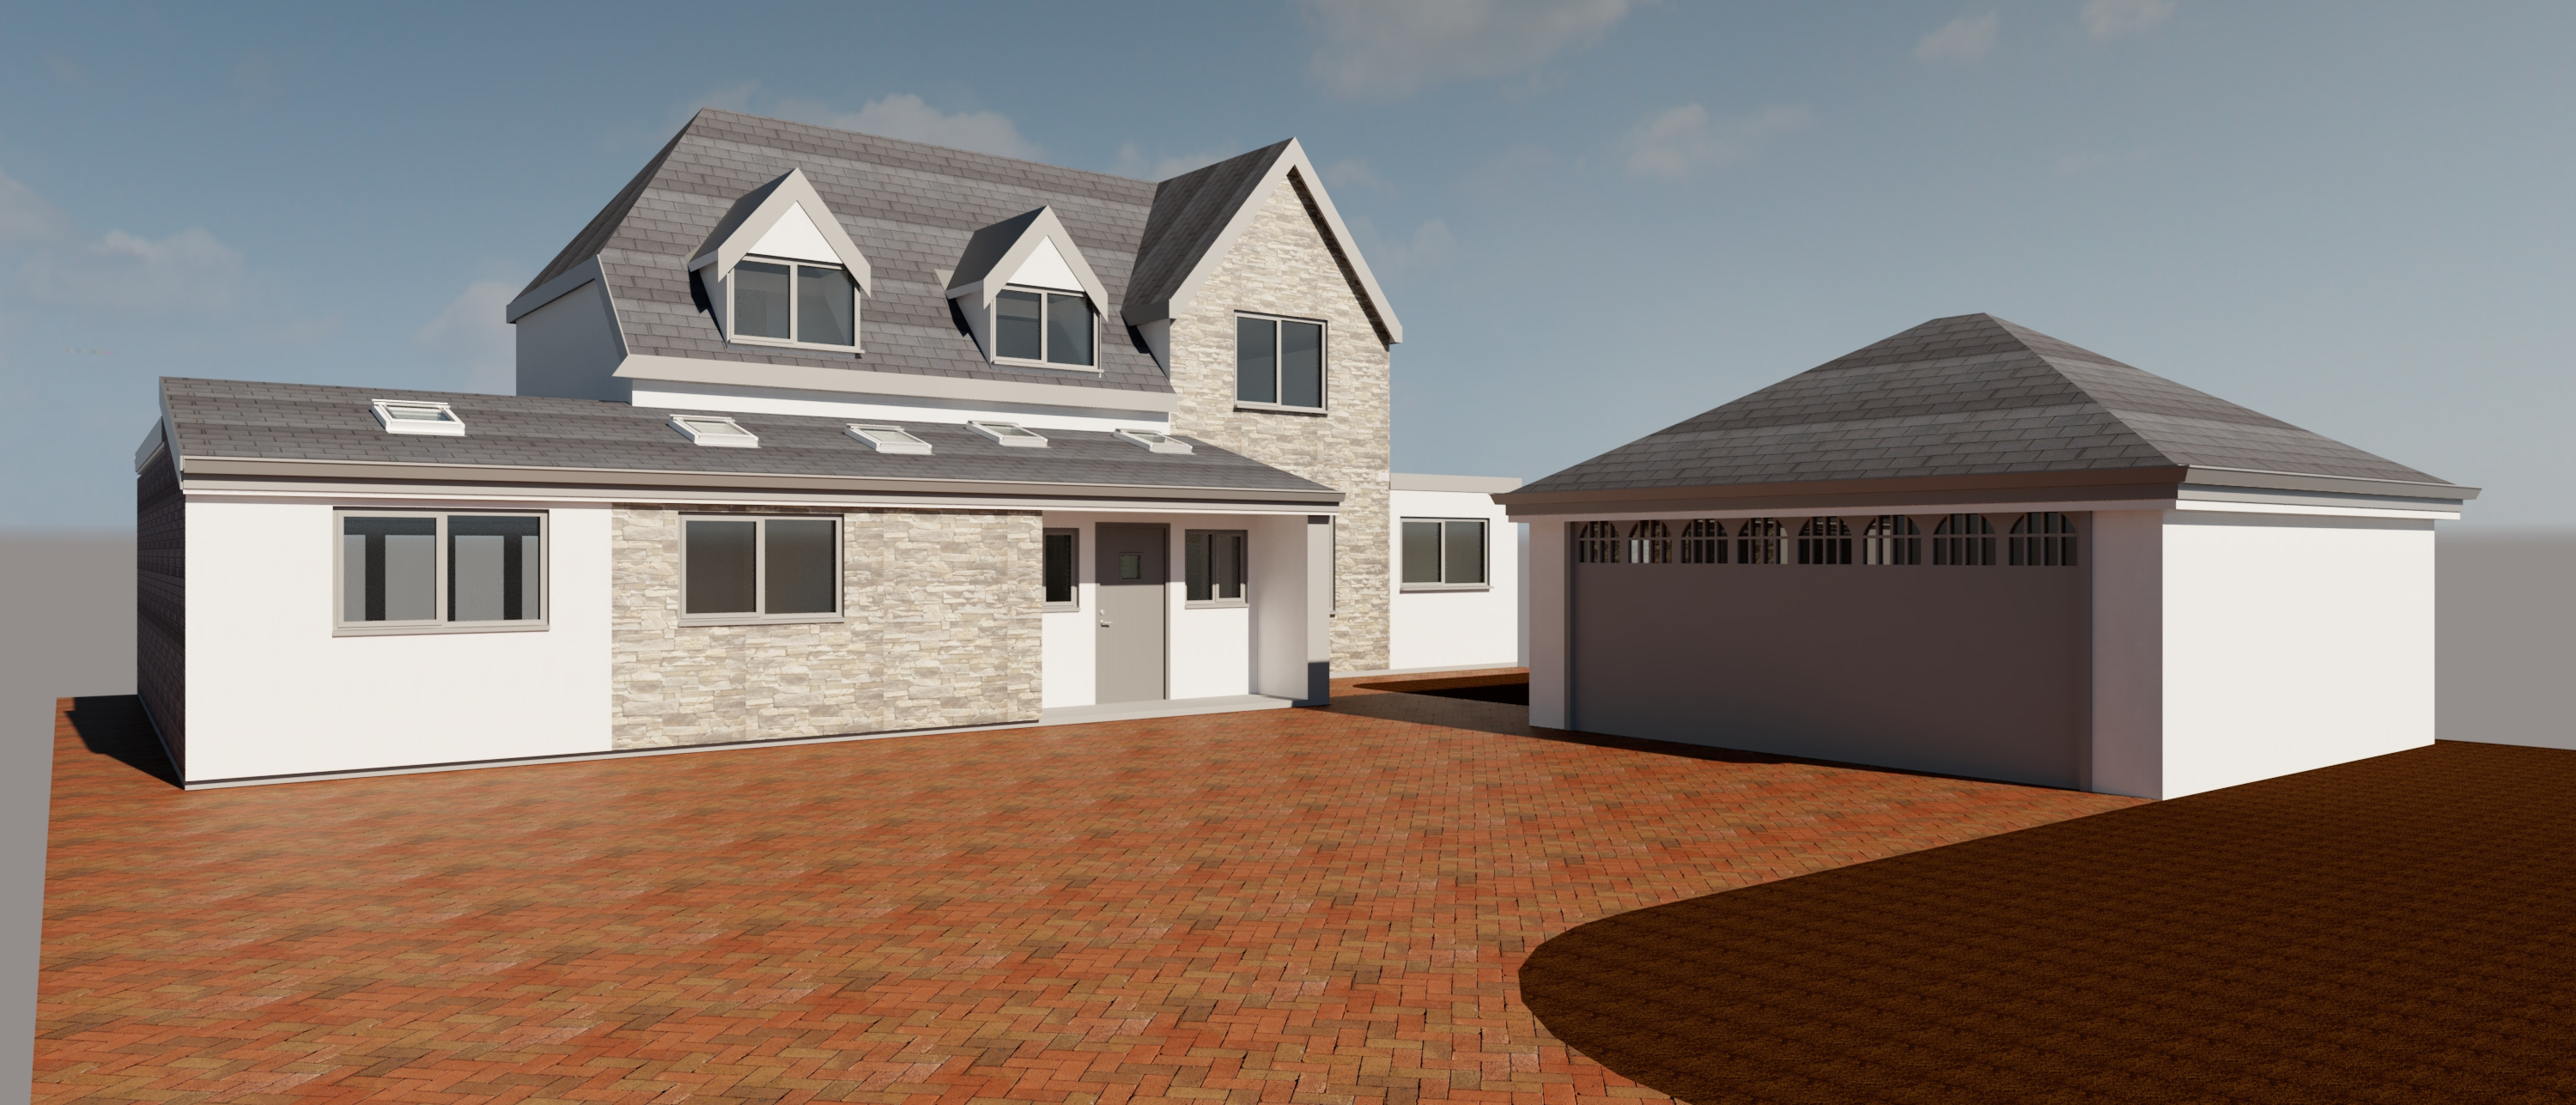 Banbury - Detached Garage, Cladding & Front Extension